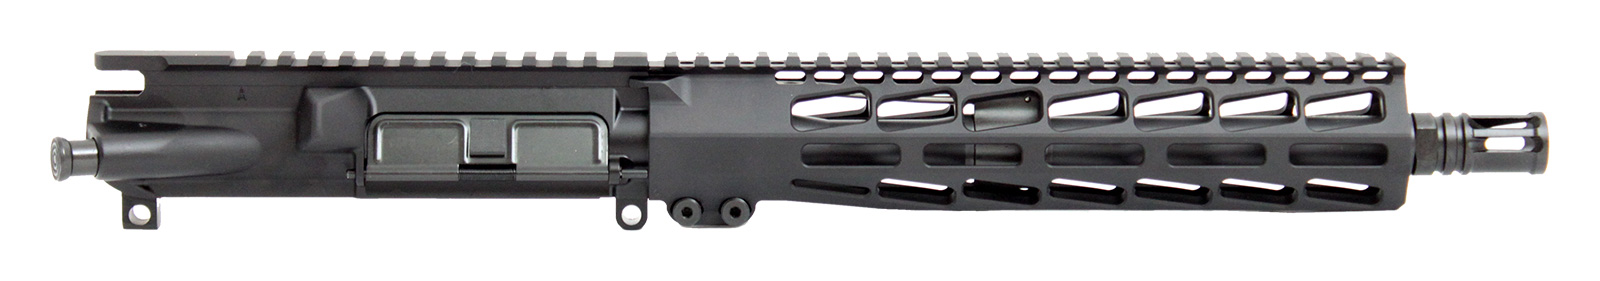 ar15-upper-assembly-10-5-inch-5-56-nato-18-160027